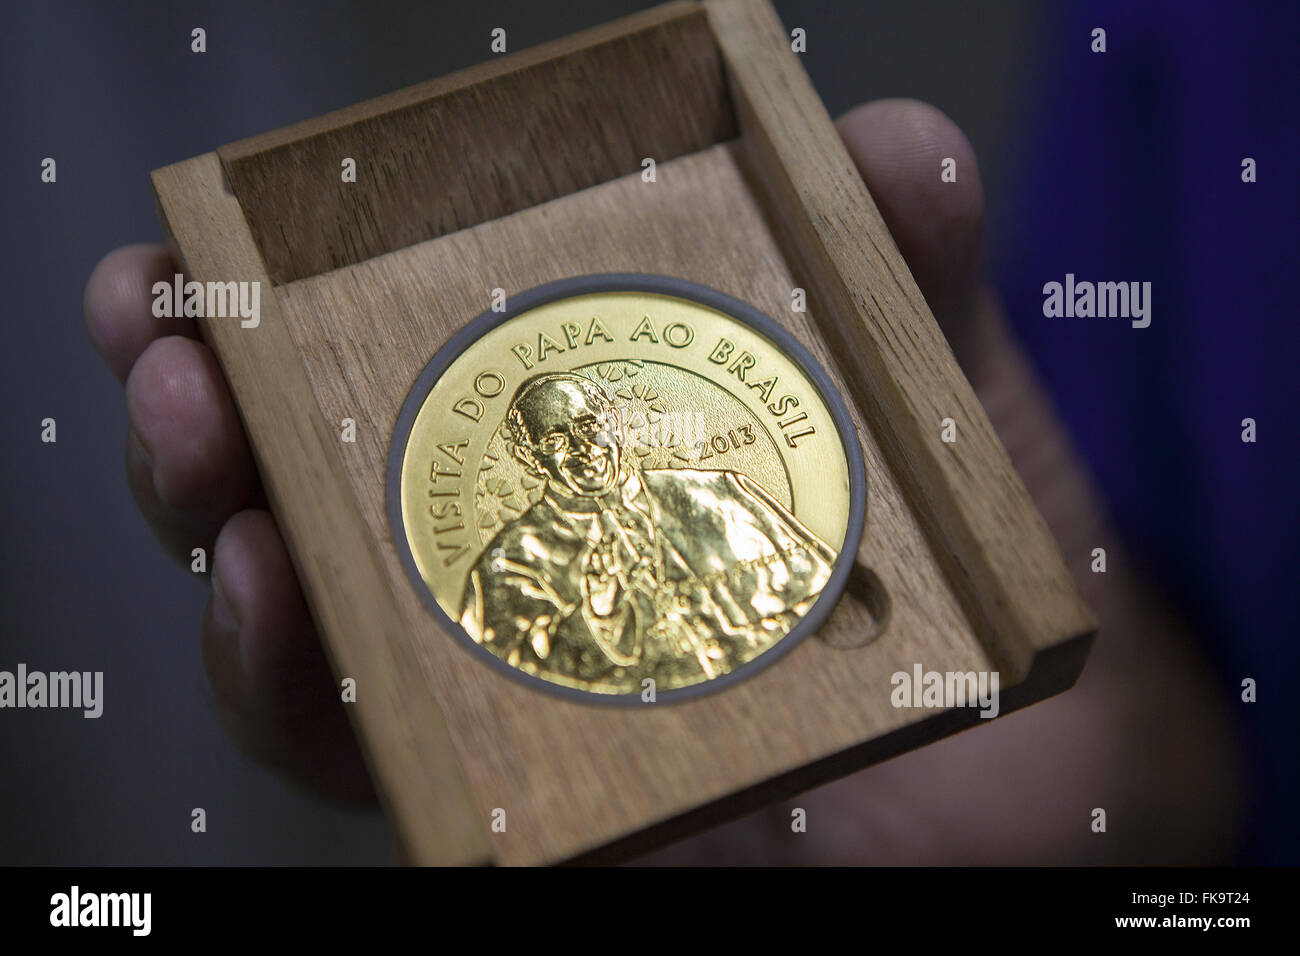 Commemorative coin of the Pope`s visit in 2013 made by Francisco Mint - Stock Image